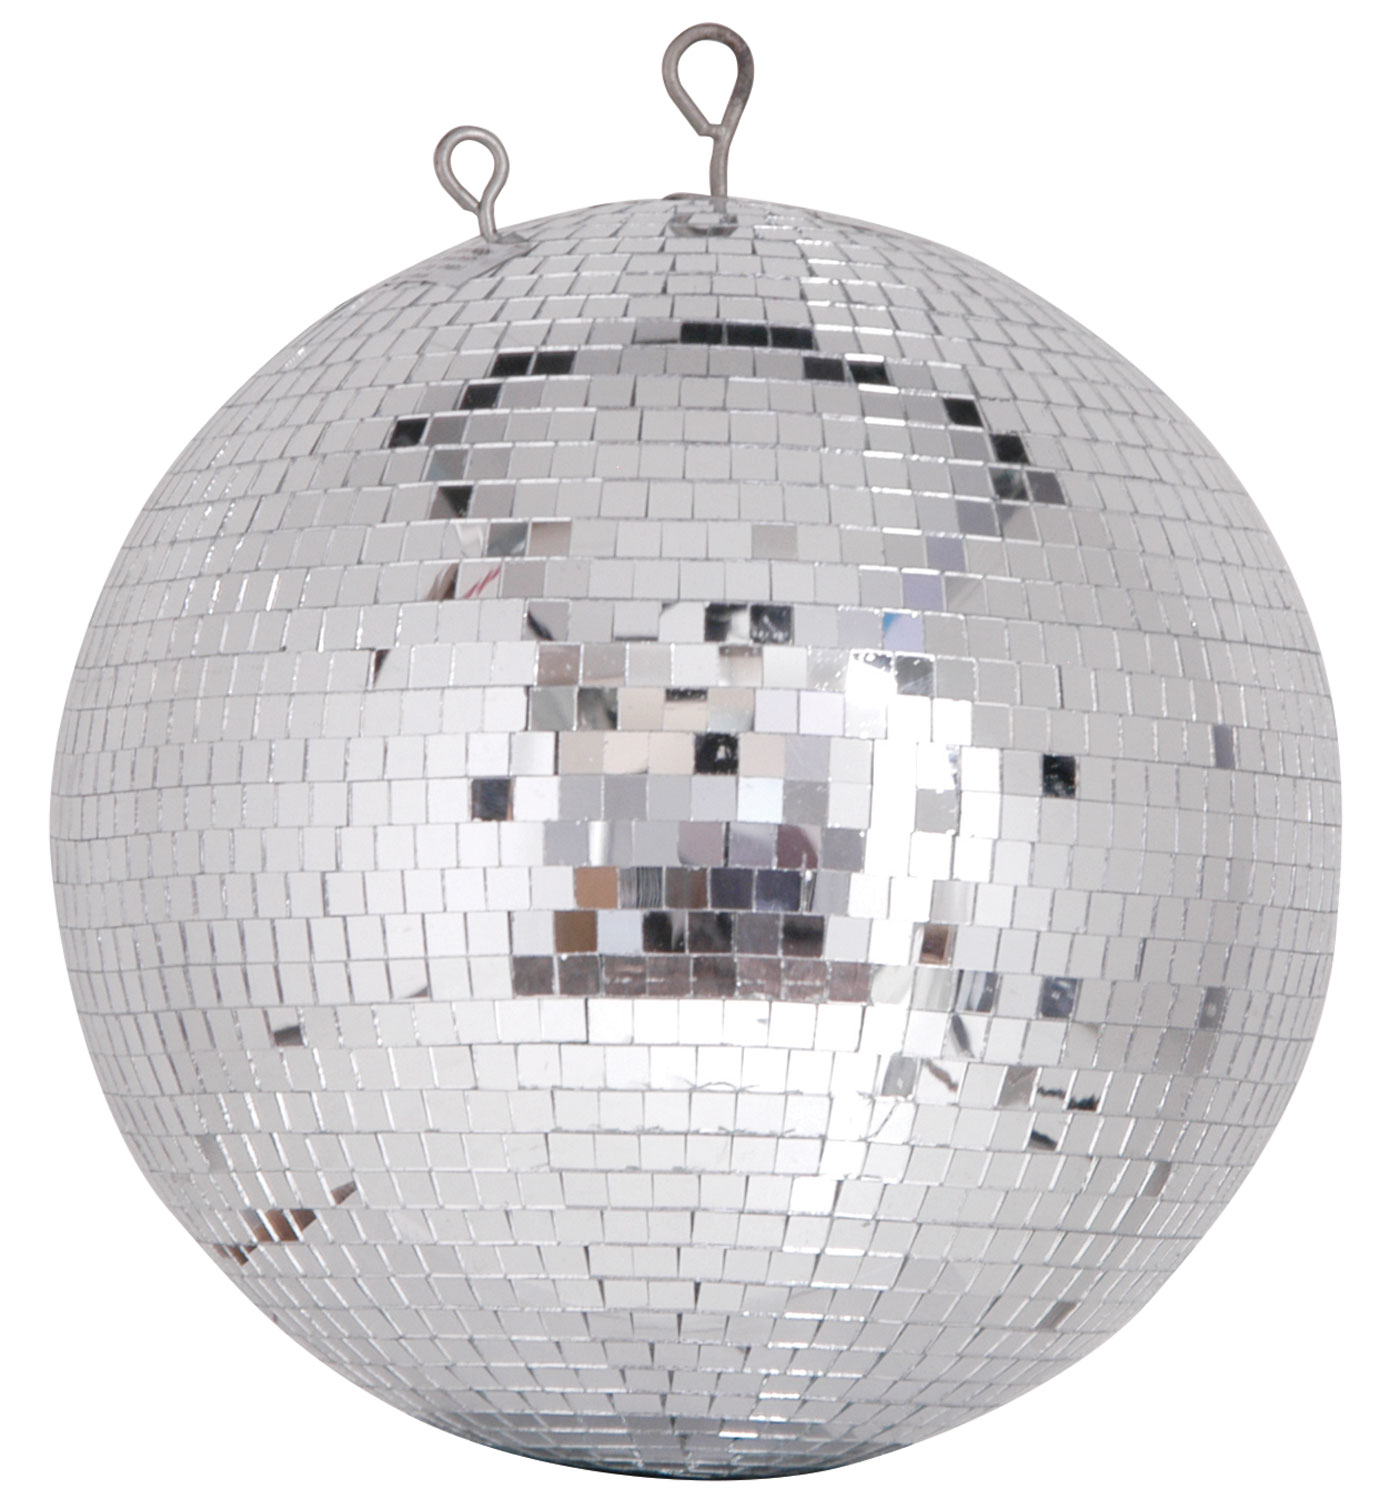 Professional mirror ball 10mm x 10mm tiles - 50cm�